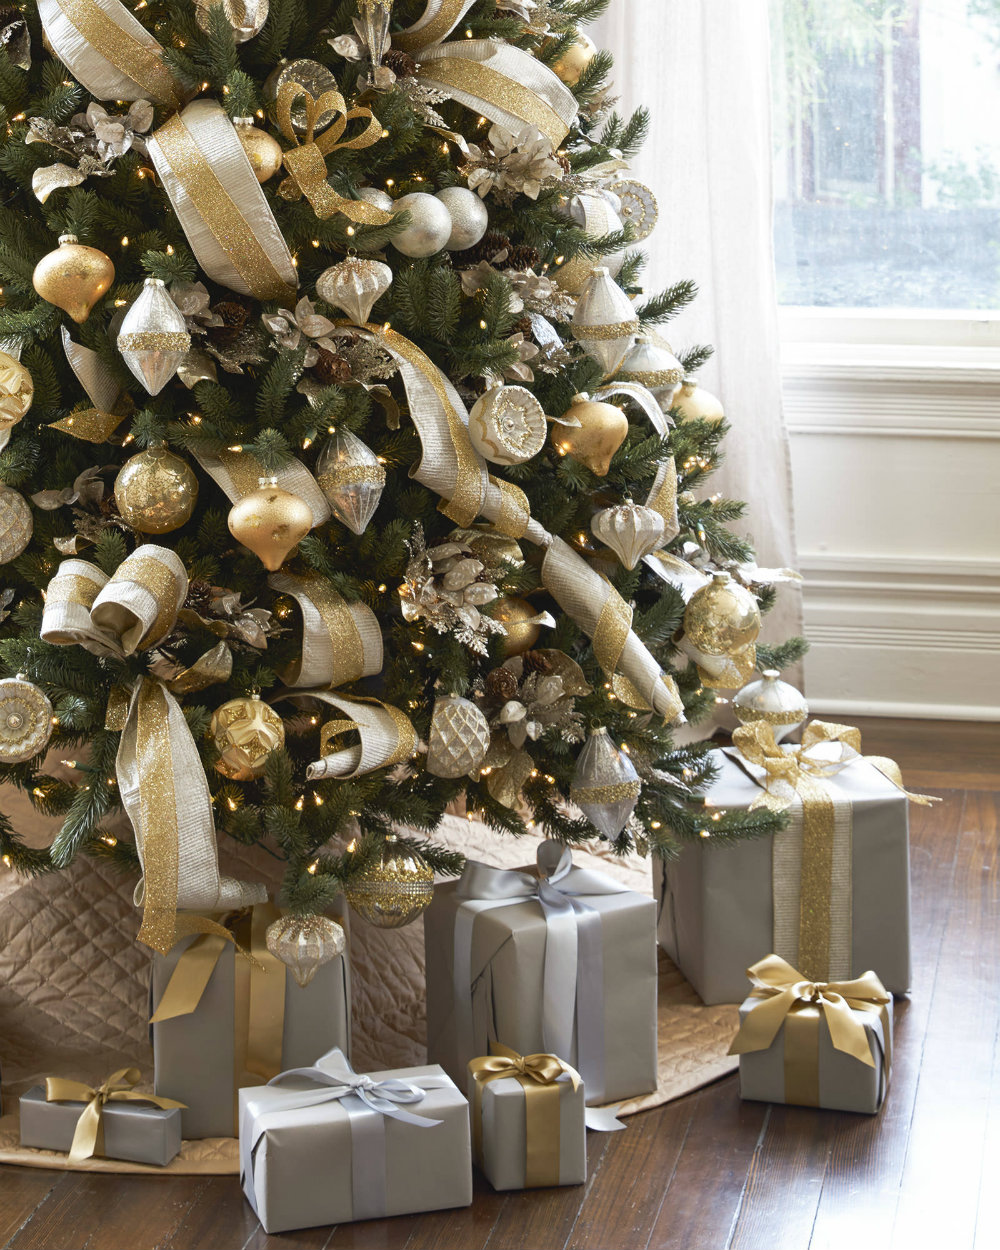 7 chic christmas decorations for the most memorable holiday 02 chic christmas decorations 7 chic christmas - Chic Christmas Decorations